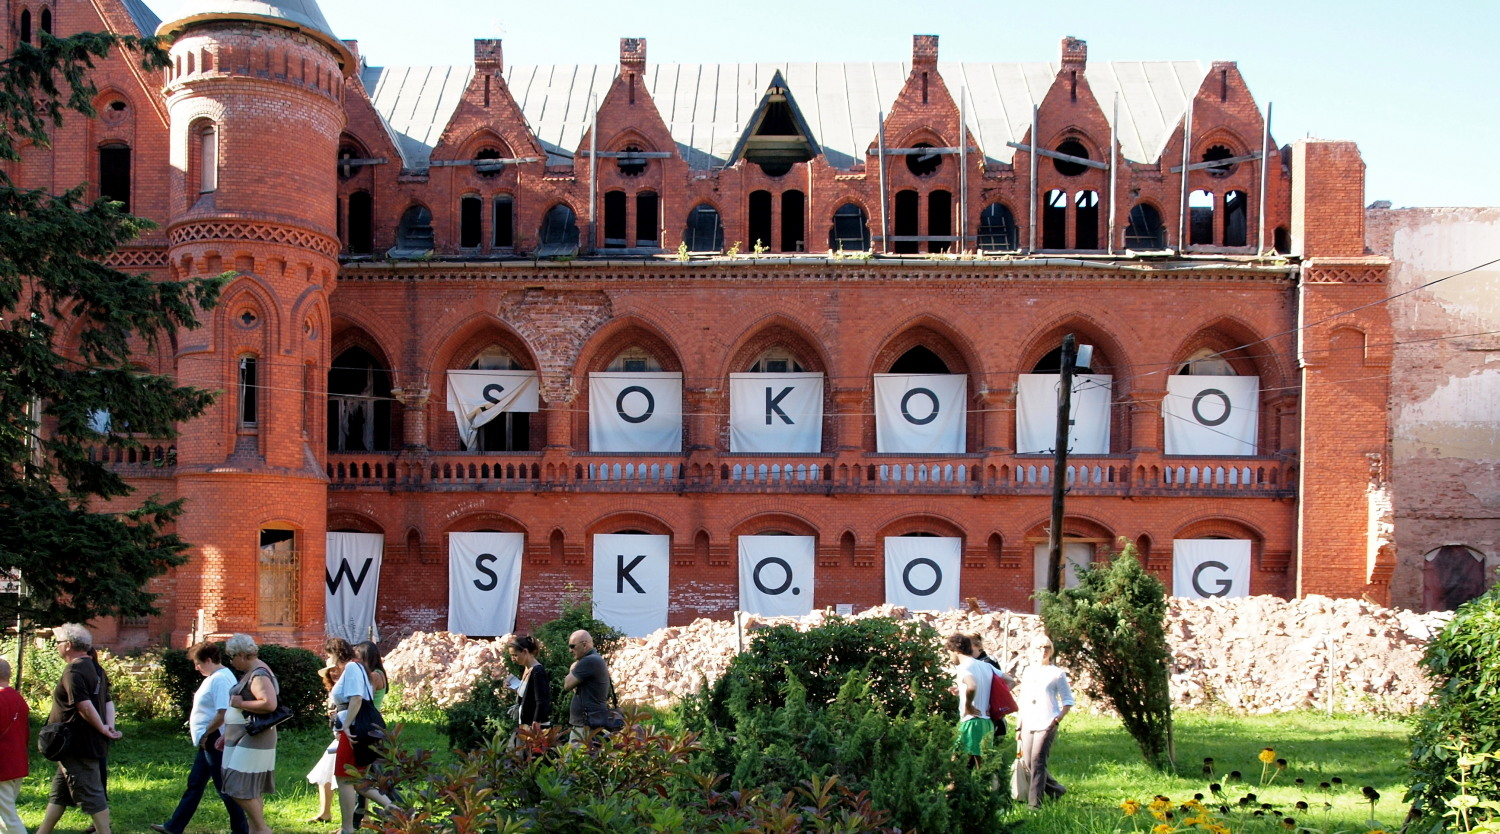 Sokolovsko, former sanatorium - now a place for art, photograph by johnicon, VG-Bild-Kunst, Bonn